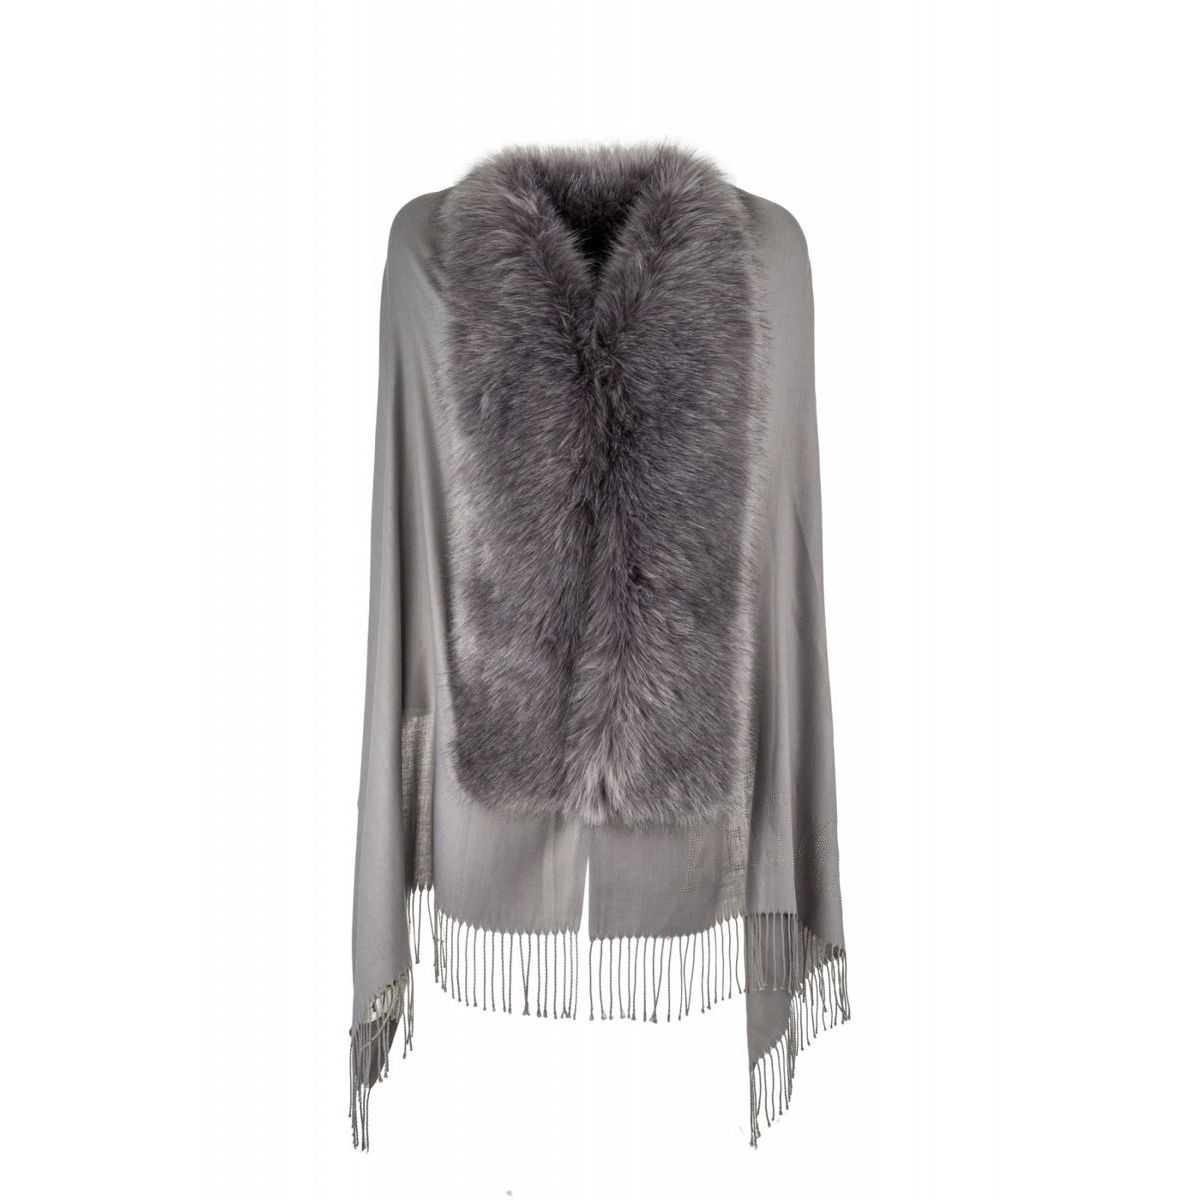 STYLE9004 SCARF Grey Alessia Massimo